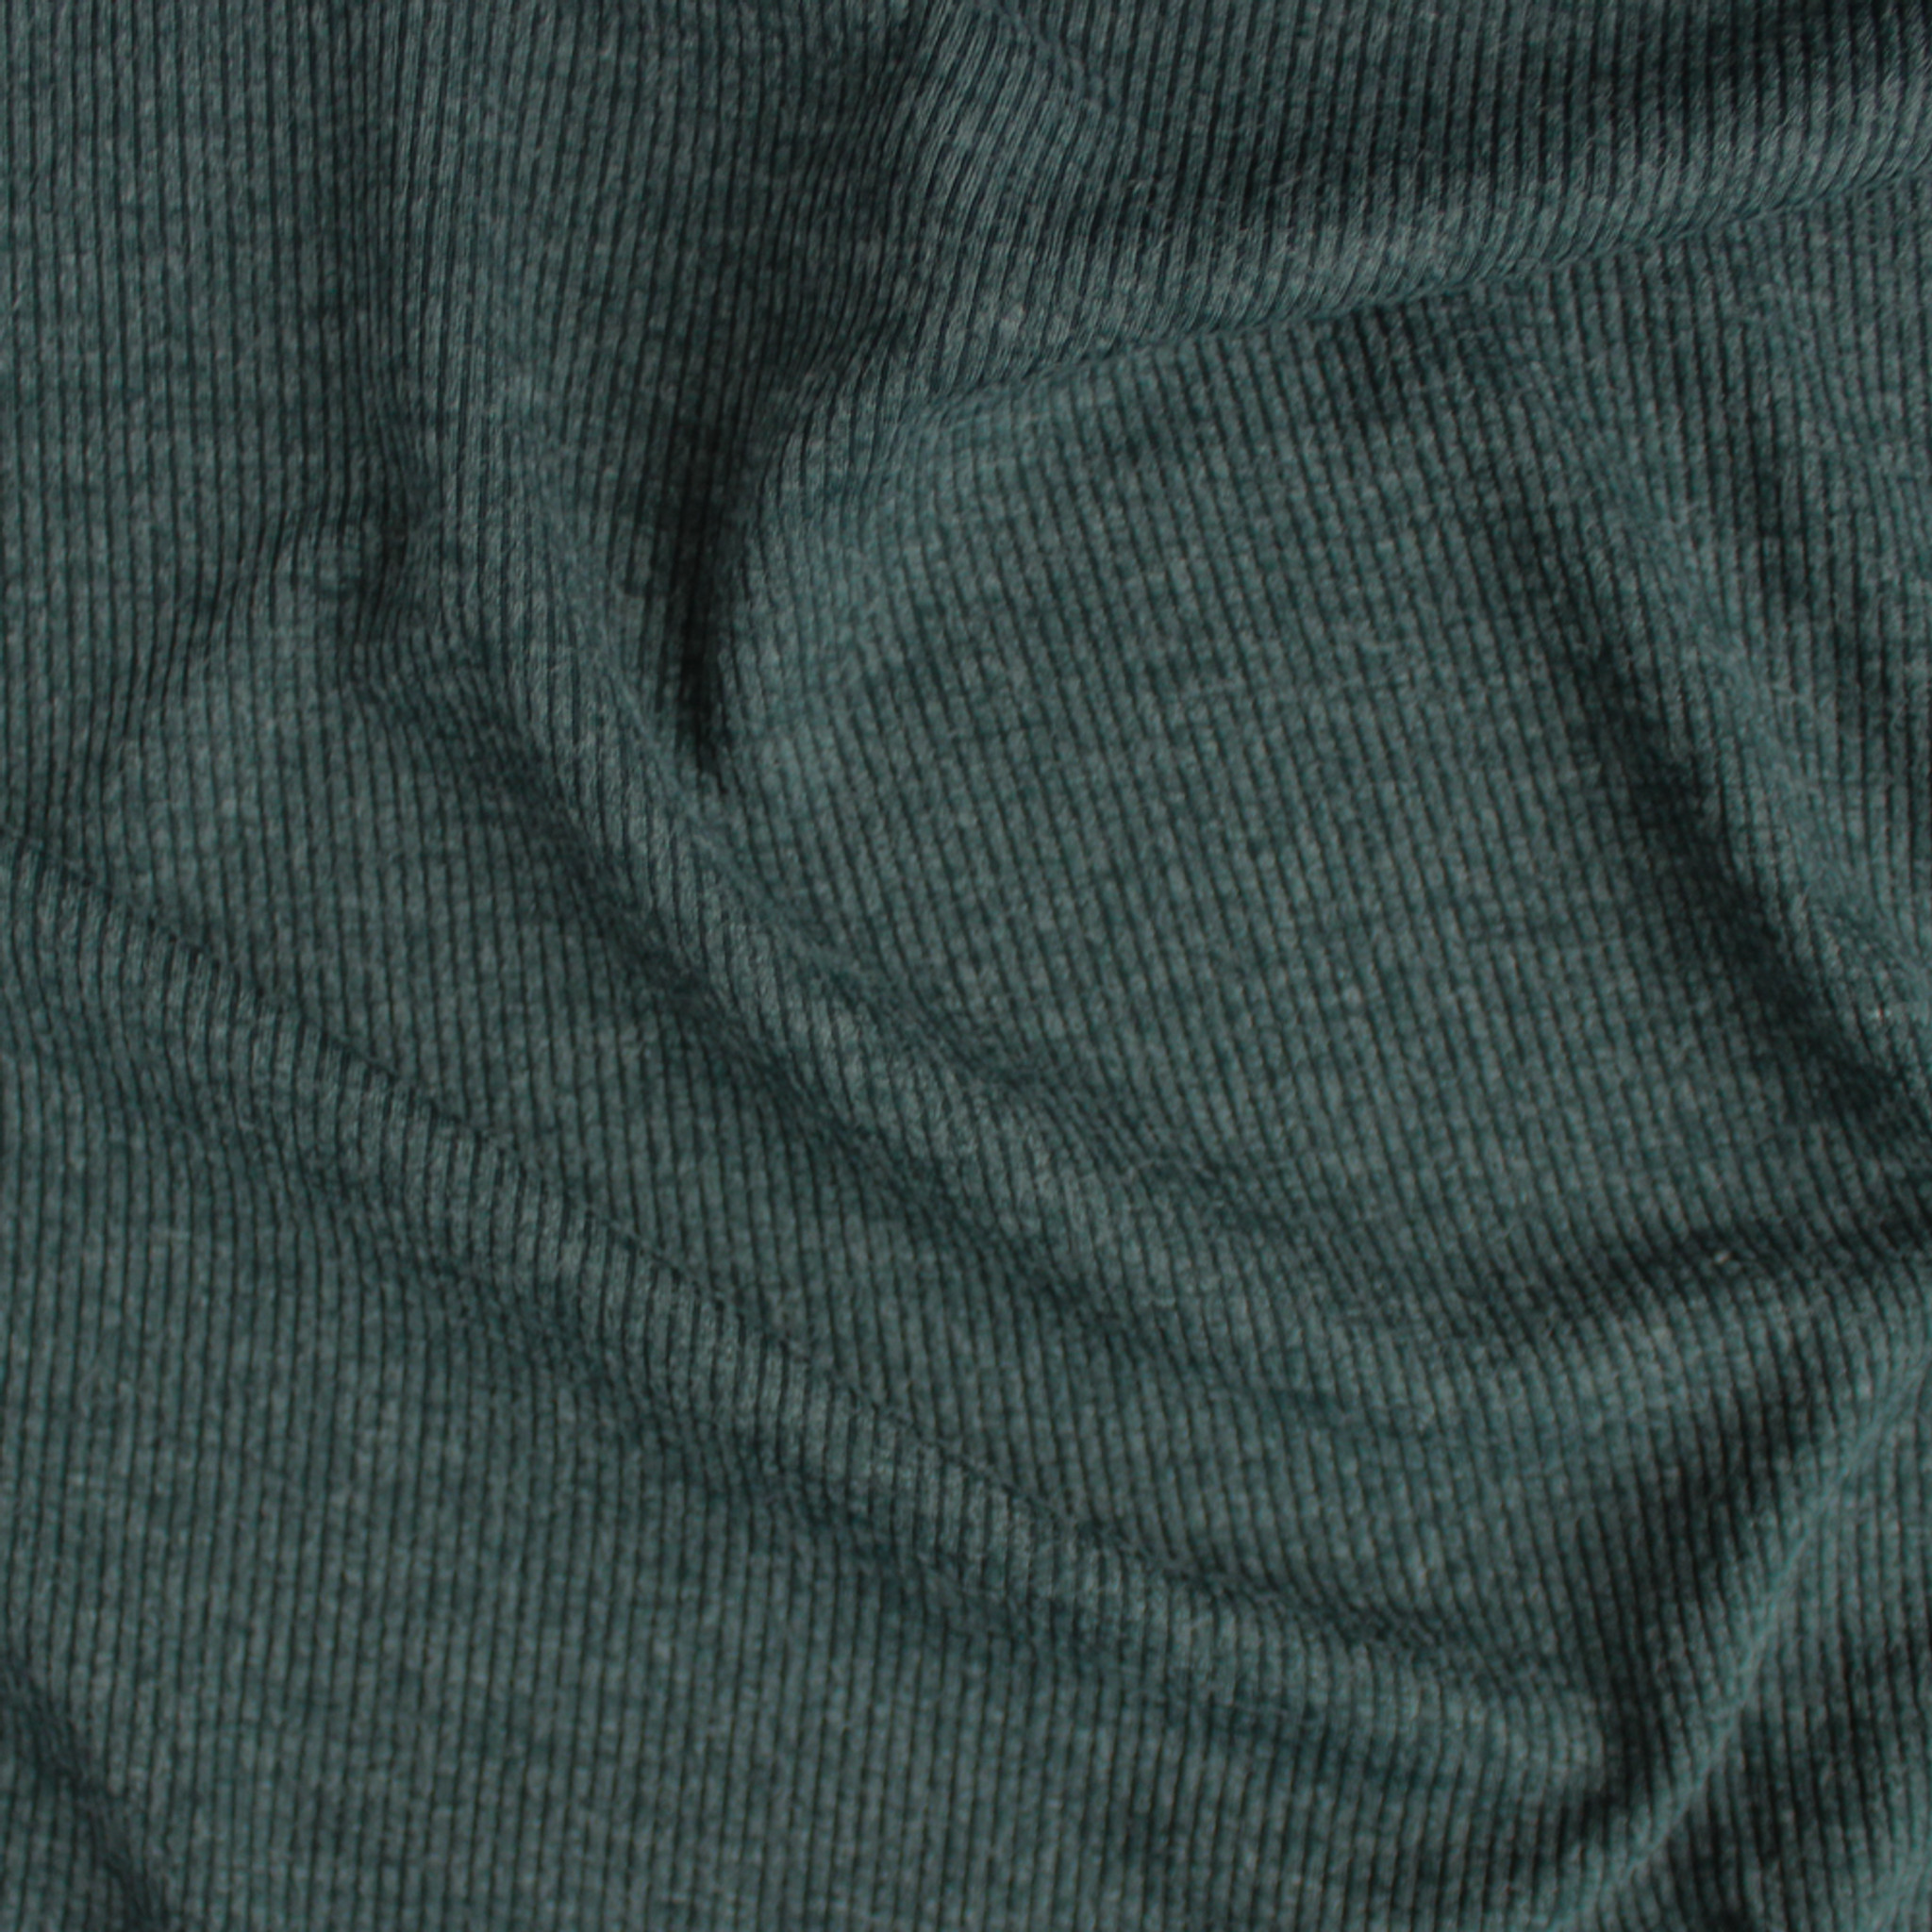 GREY MELANGE STRETCH RIB FABRIC SOLD BY THE METRE